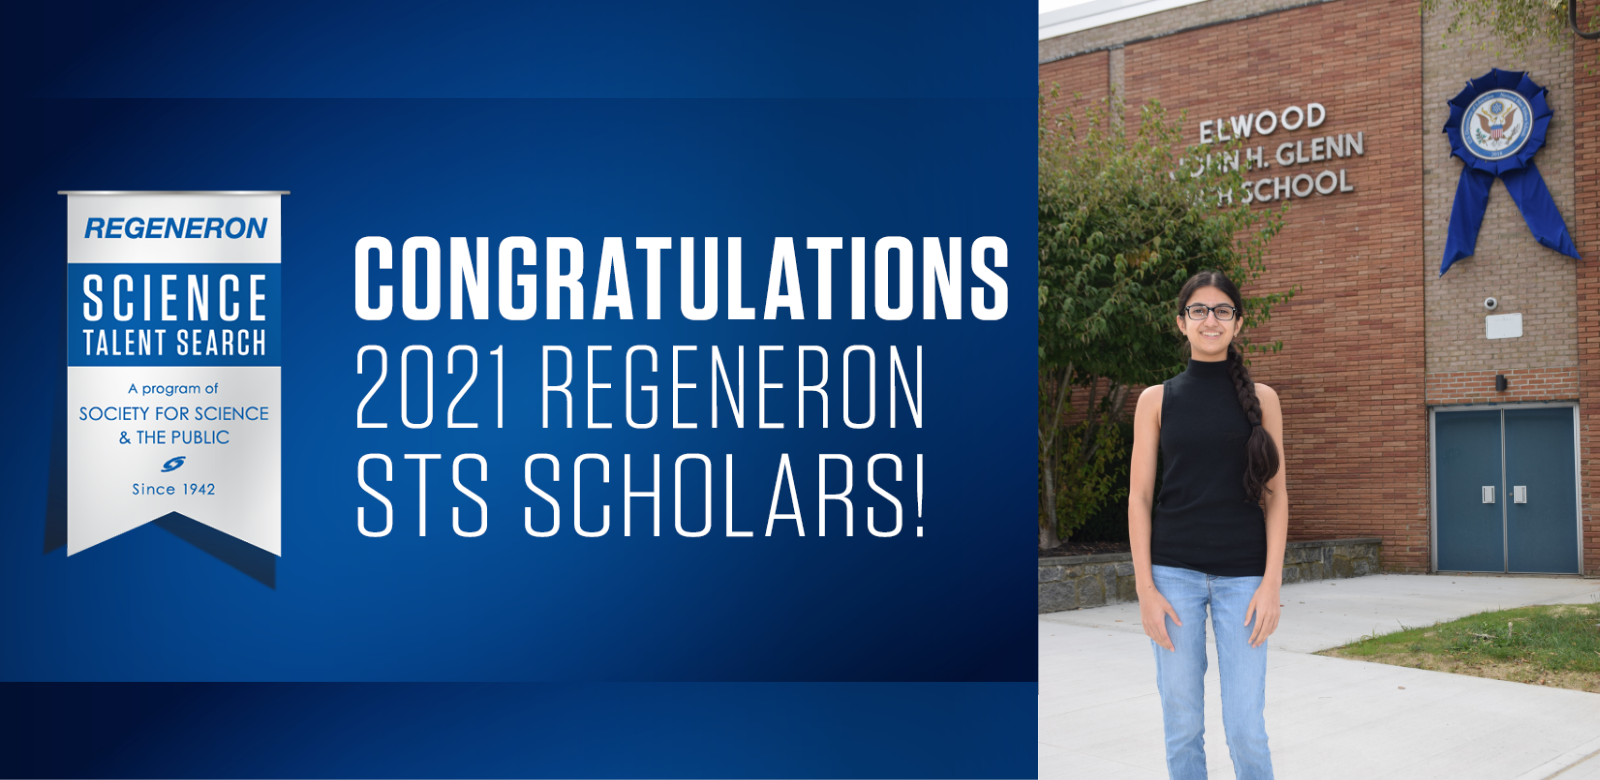 Student Rithika Narayan Named 2021 Regeneron Science Talent Search Scholar